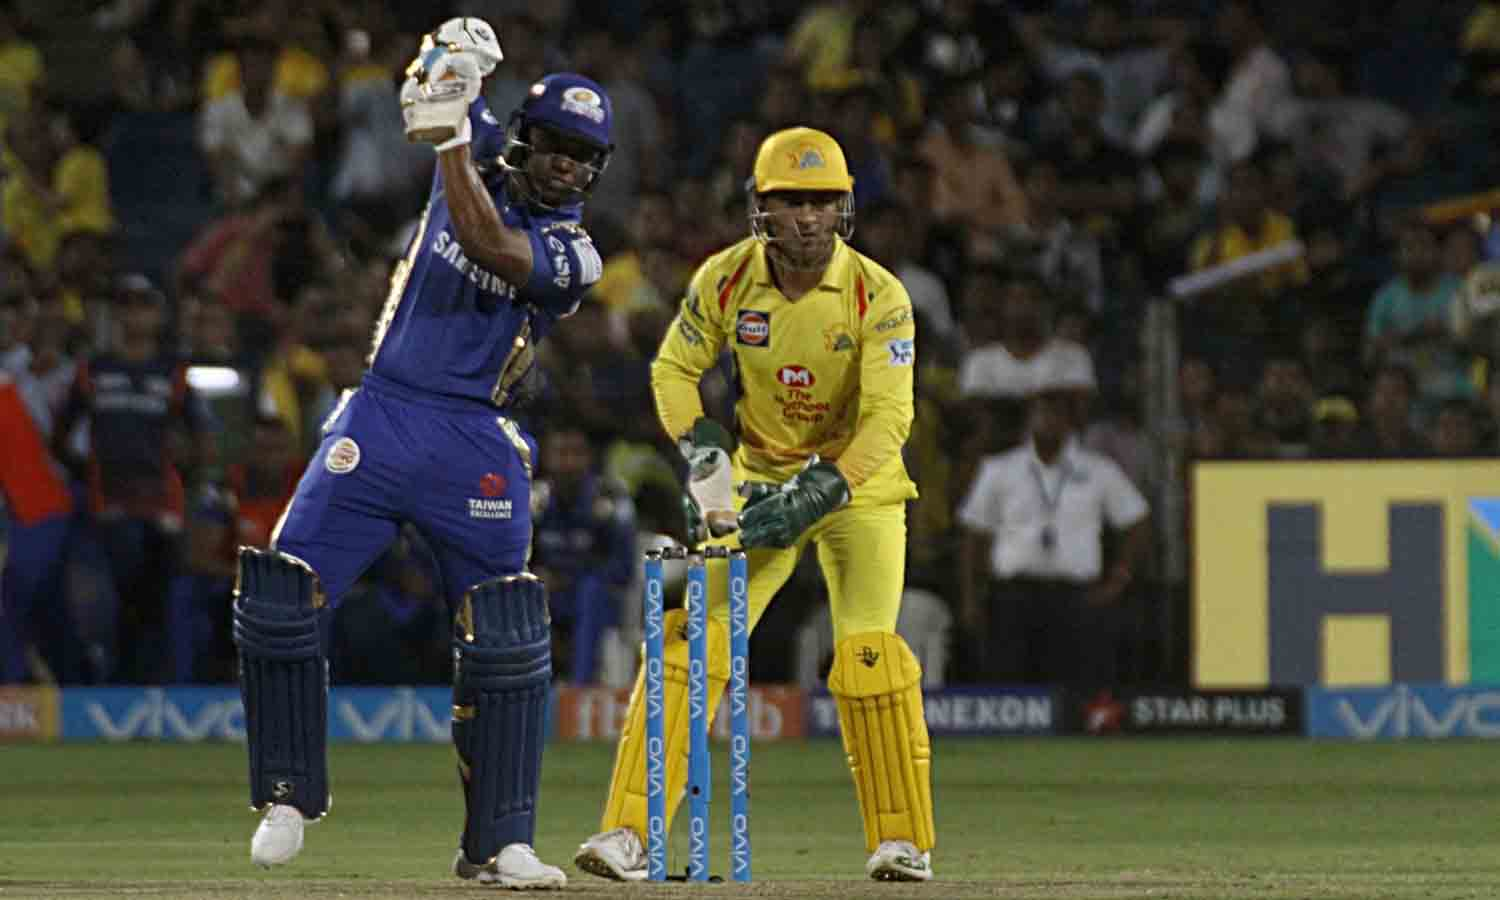 Mumbai Indians Evin Lewis In Action During An IPL 2018 Images